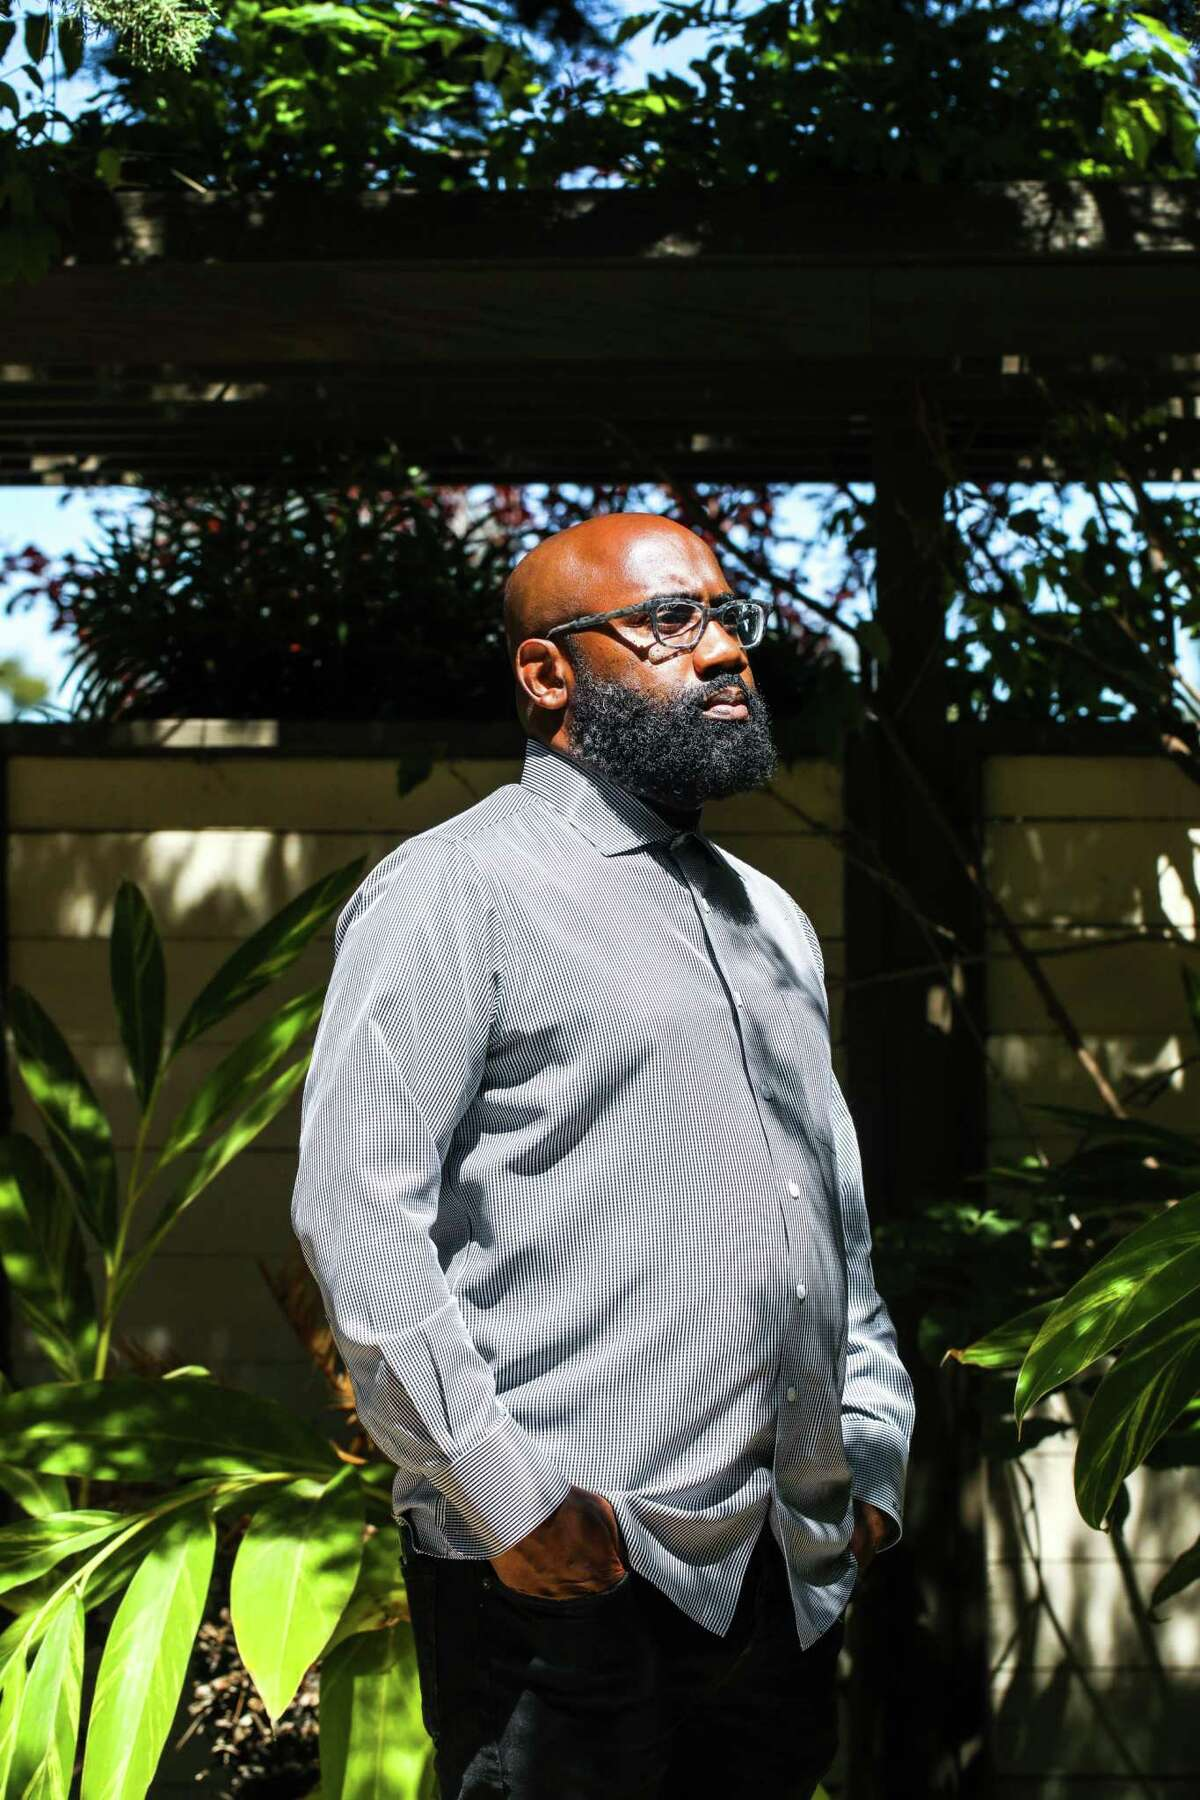 The Rev. Kaloma Smith stands in a garden at University AME Zion Church in Palo Alto. Smith, who moved to the city eight years ago, said he wasn't surprised by the recent lawsuit by five police officers who objected to depictions of Assata Shakur in a temporary Black Lives Matter mural outside City Hall.